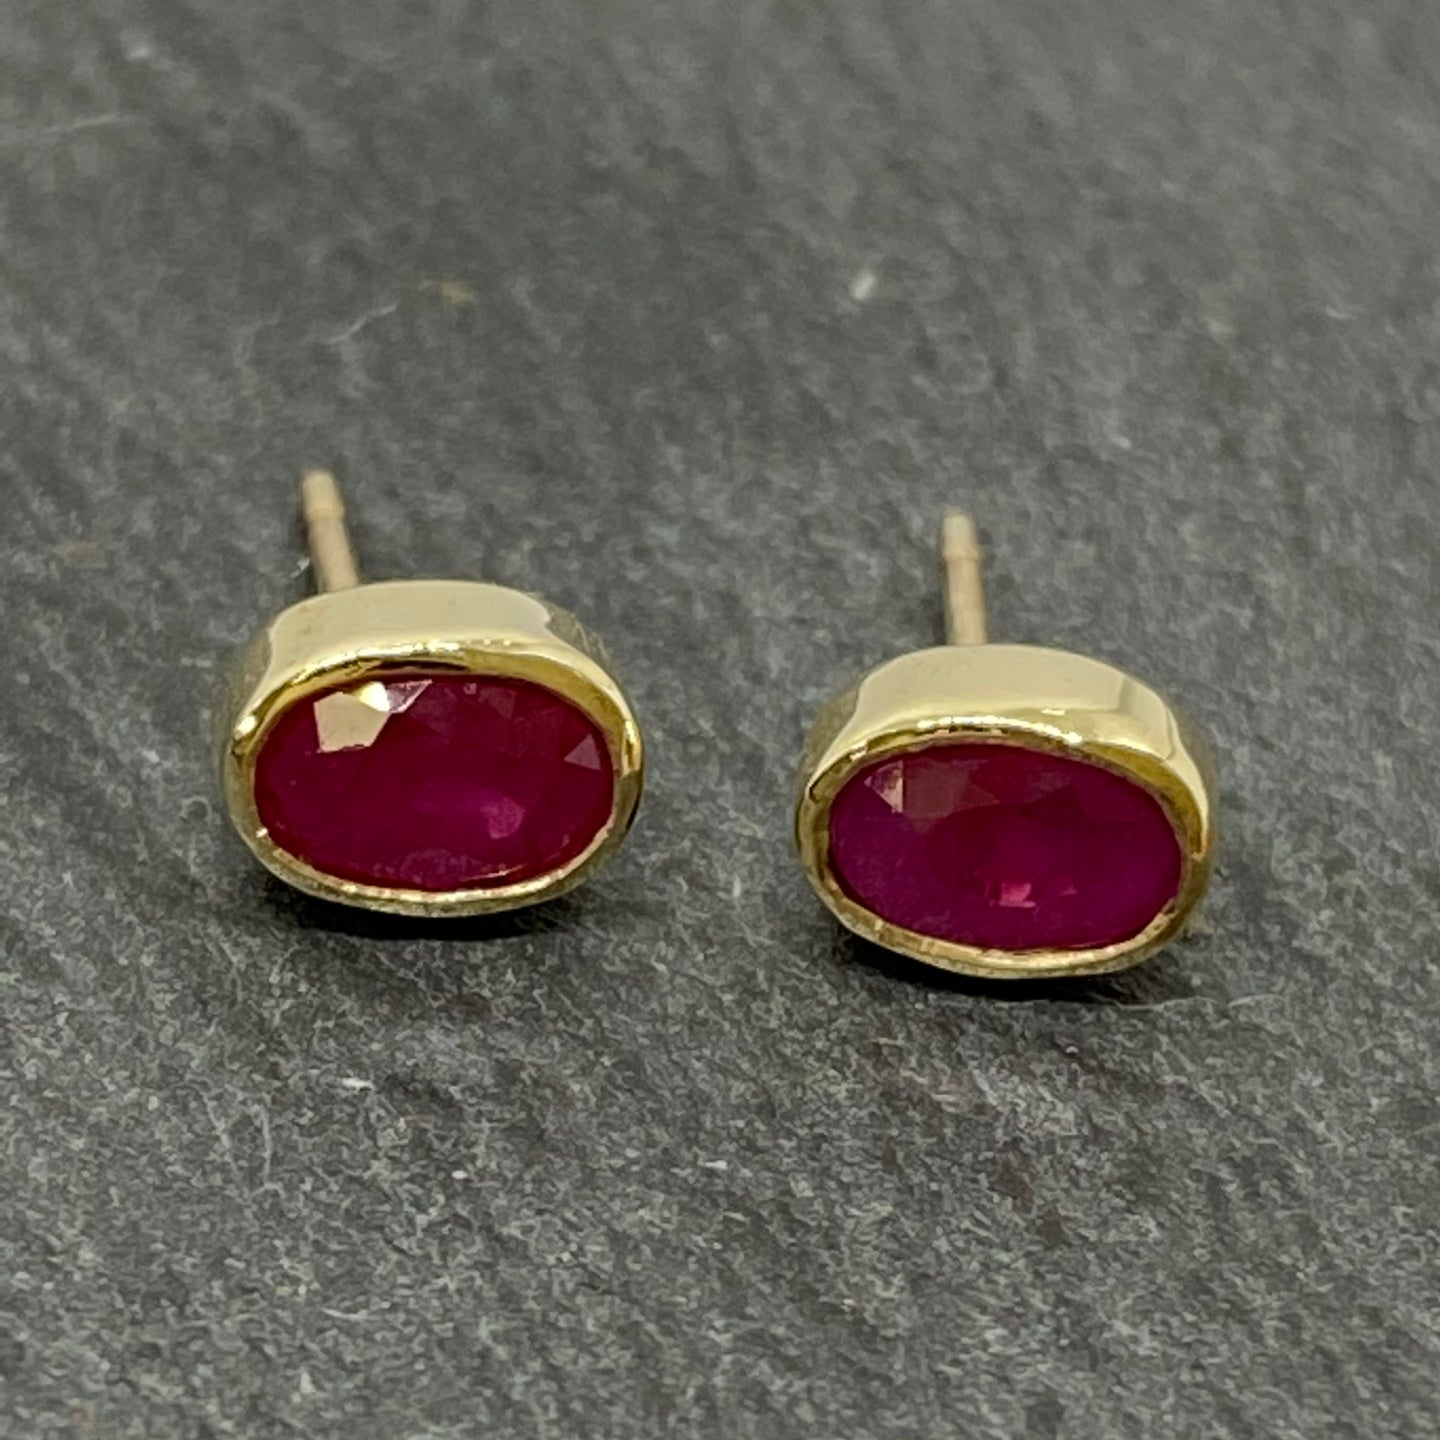 18ct Gold Oval Ruby Stud Earrings